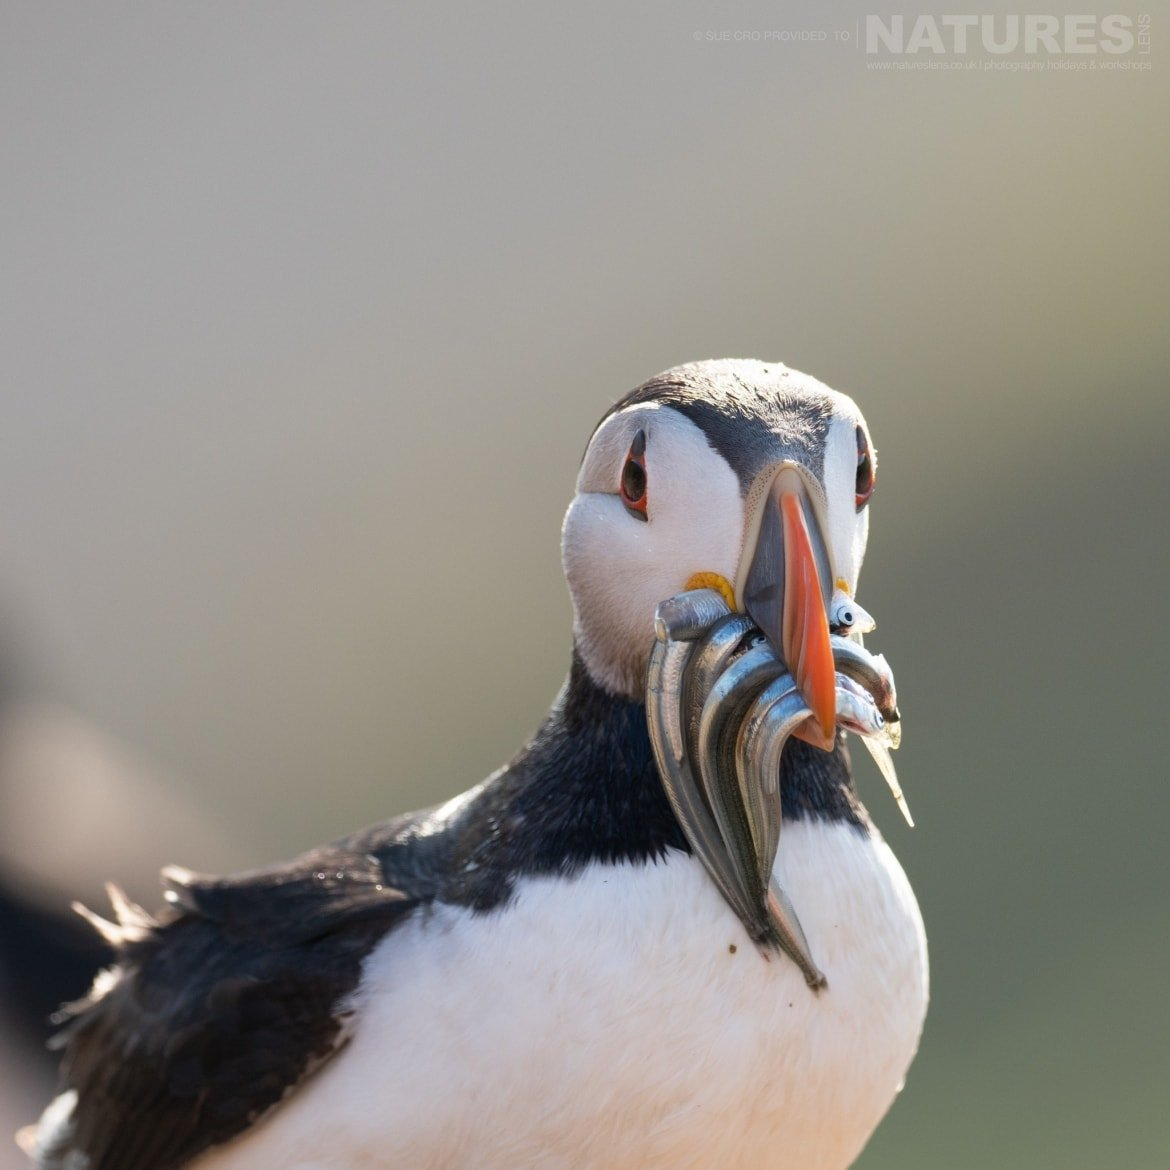 With A Beak Full Of Sand Eels, This Puffin Poses For The Classic Skomer Image Photographed During The NaturesLens Atlantic Puffins Of Skomer Photography Holiday